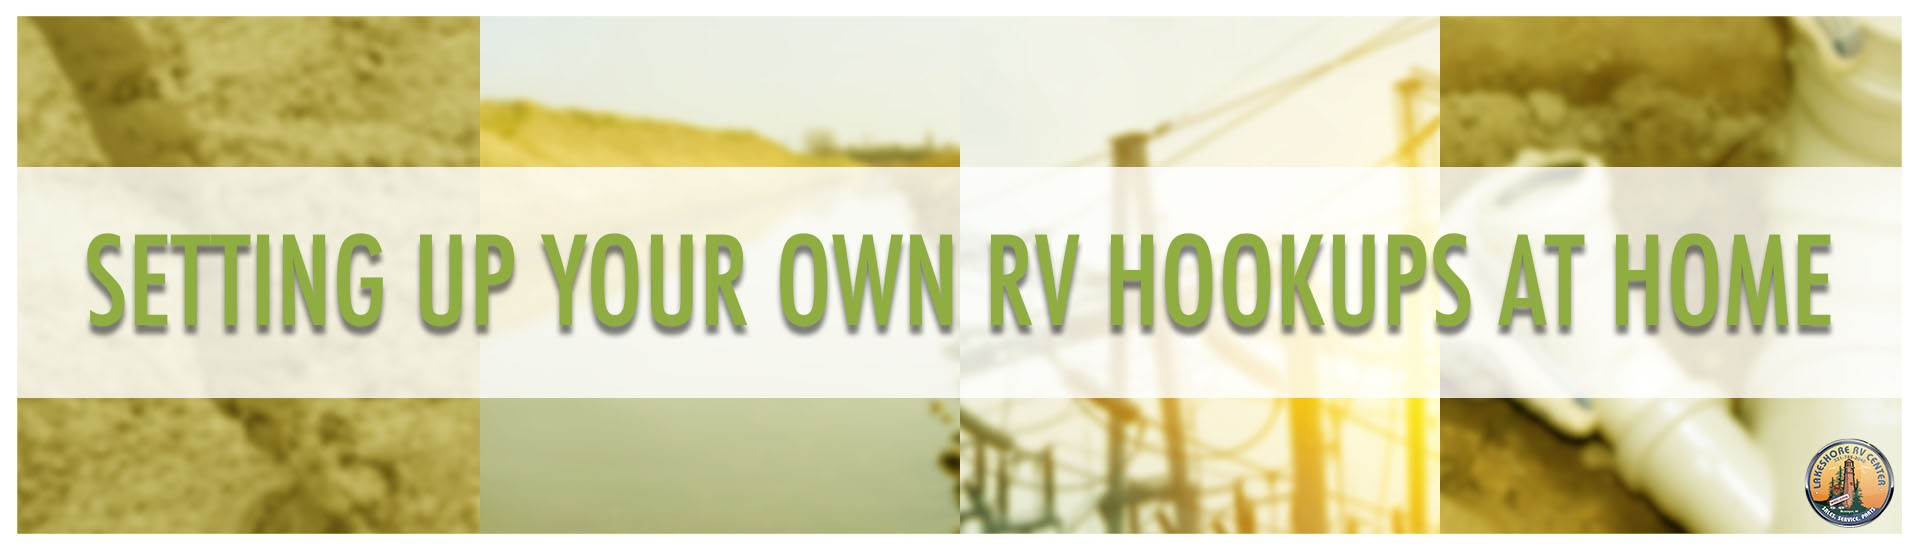 Rv hook up fees